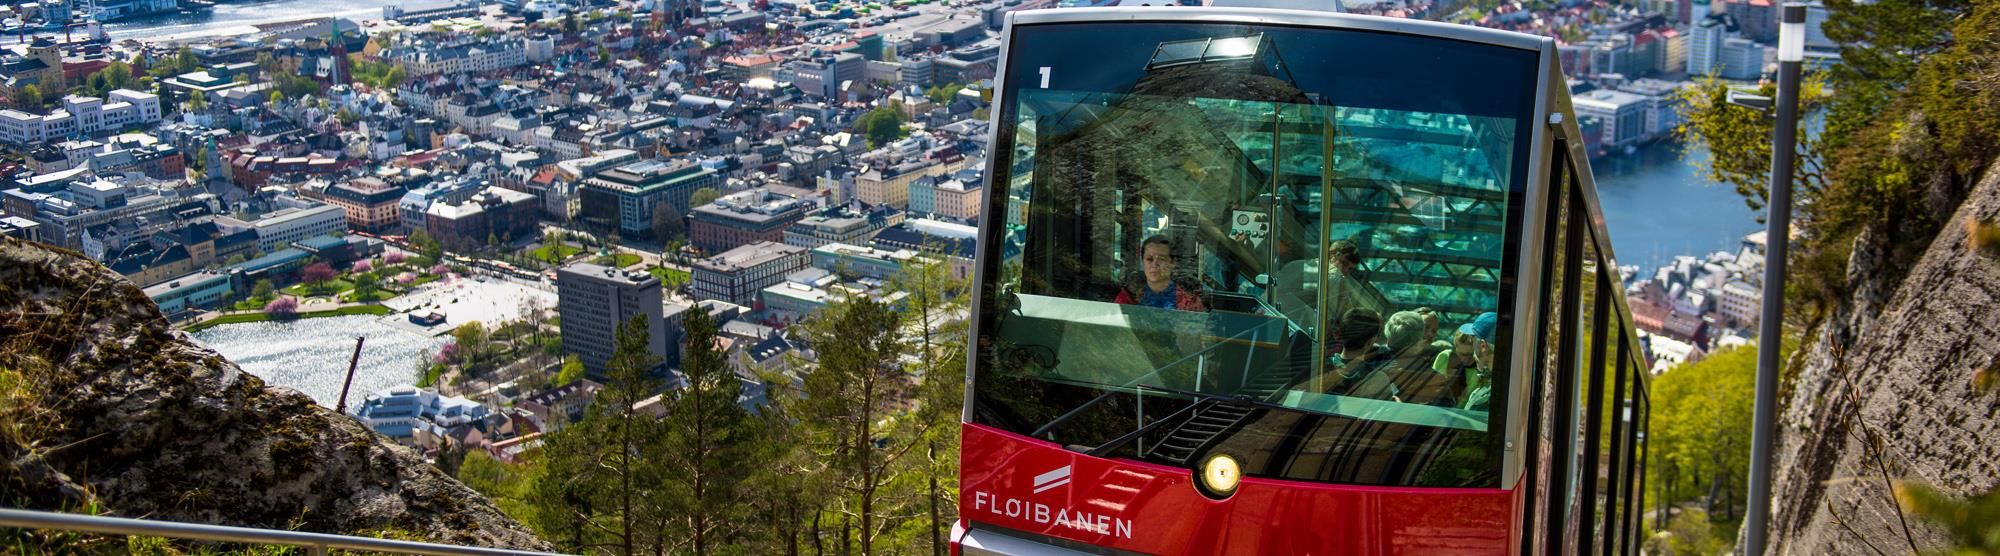 Attractions included in the Bergen Card